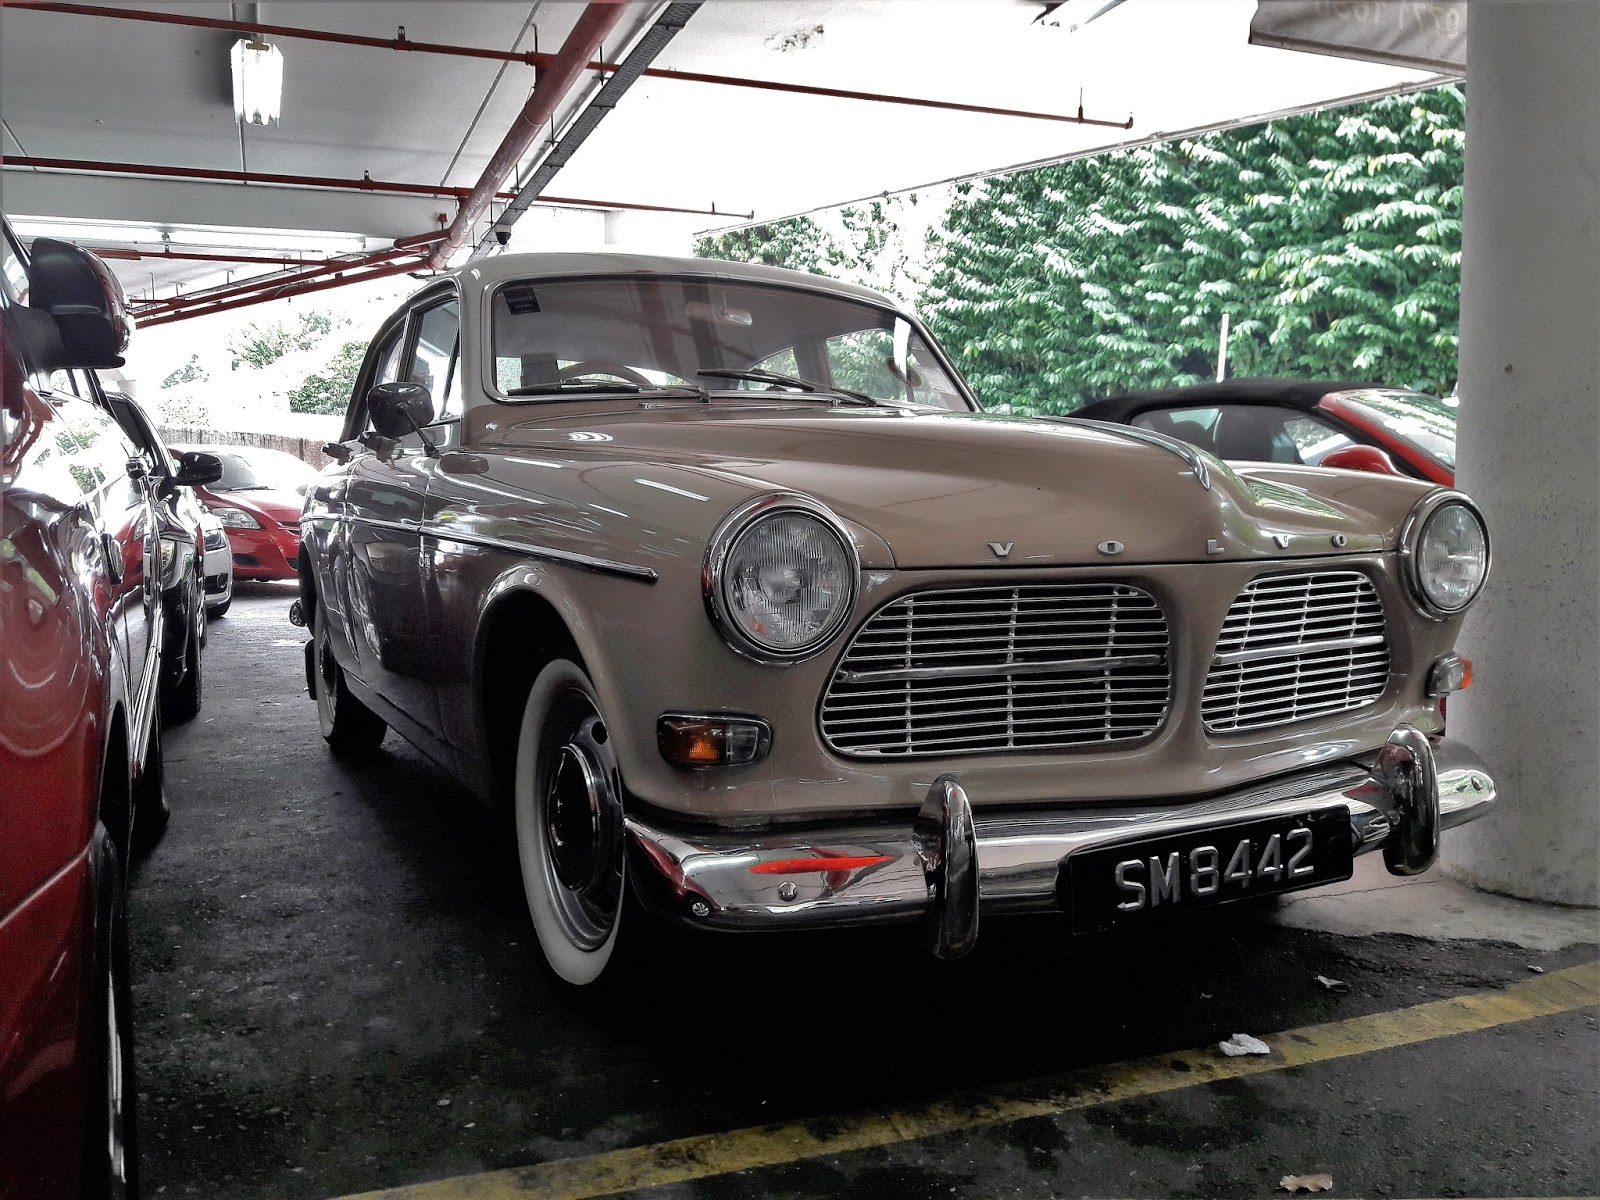 Singapore Vintage and Classic Cars: More than an old car #53: Volvo ...